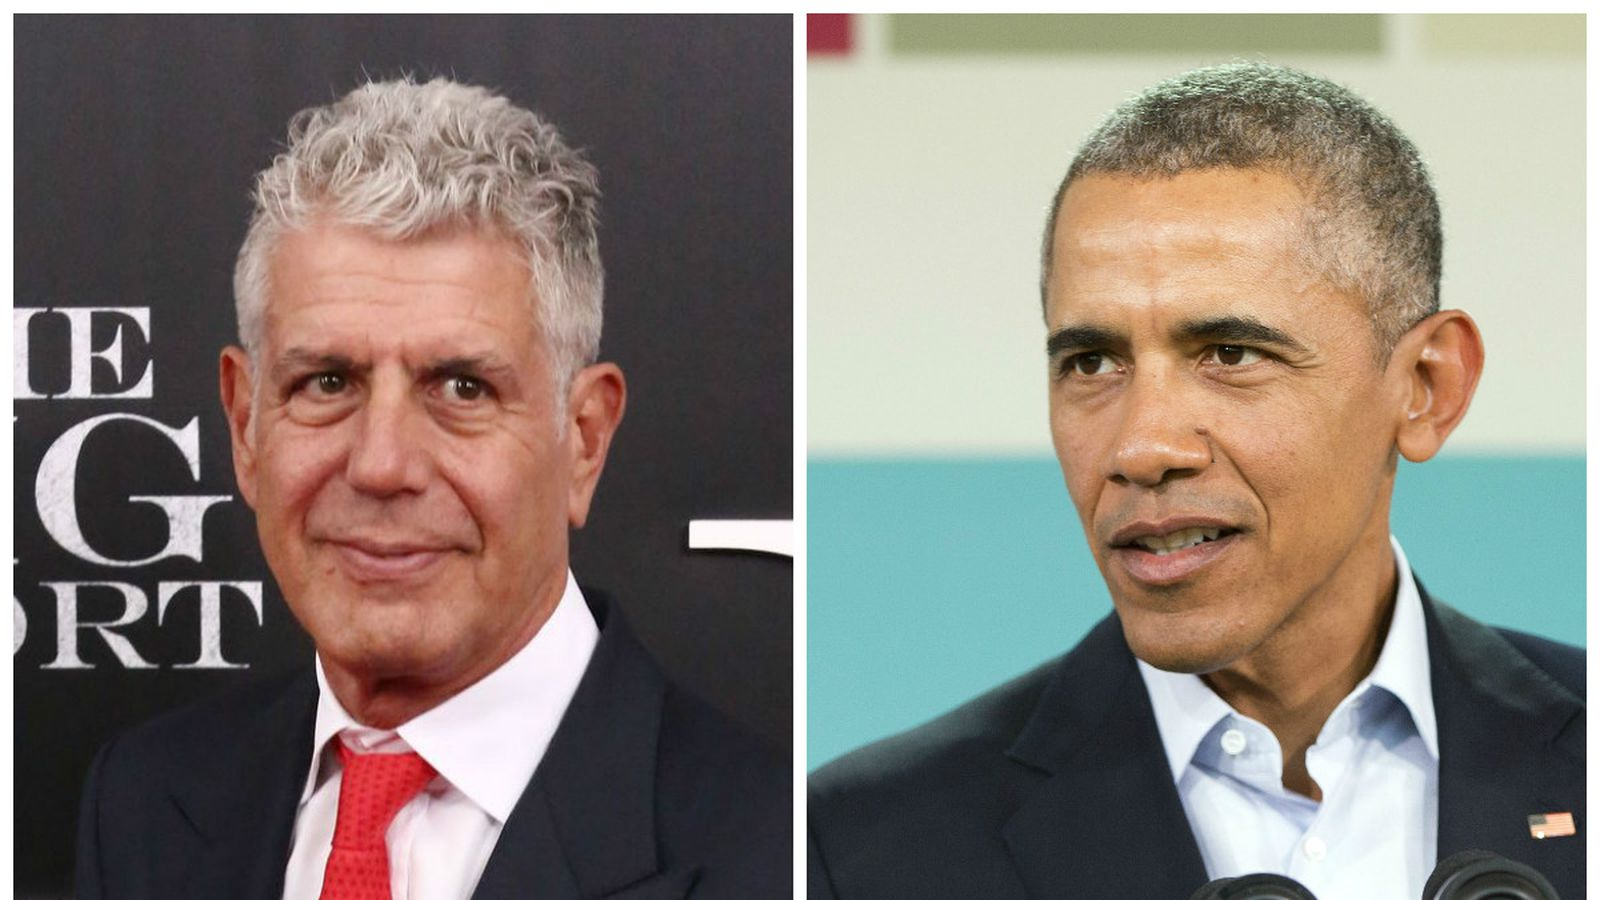 President Obama Just Had Dinner With Anthony Bourdain [Updated]